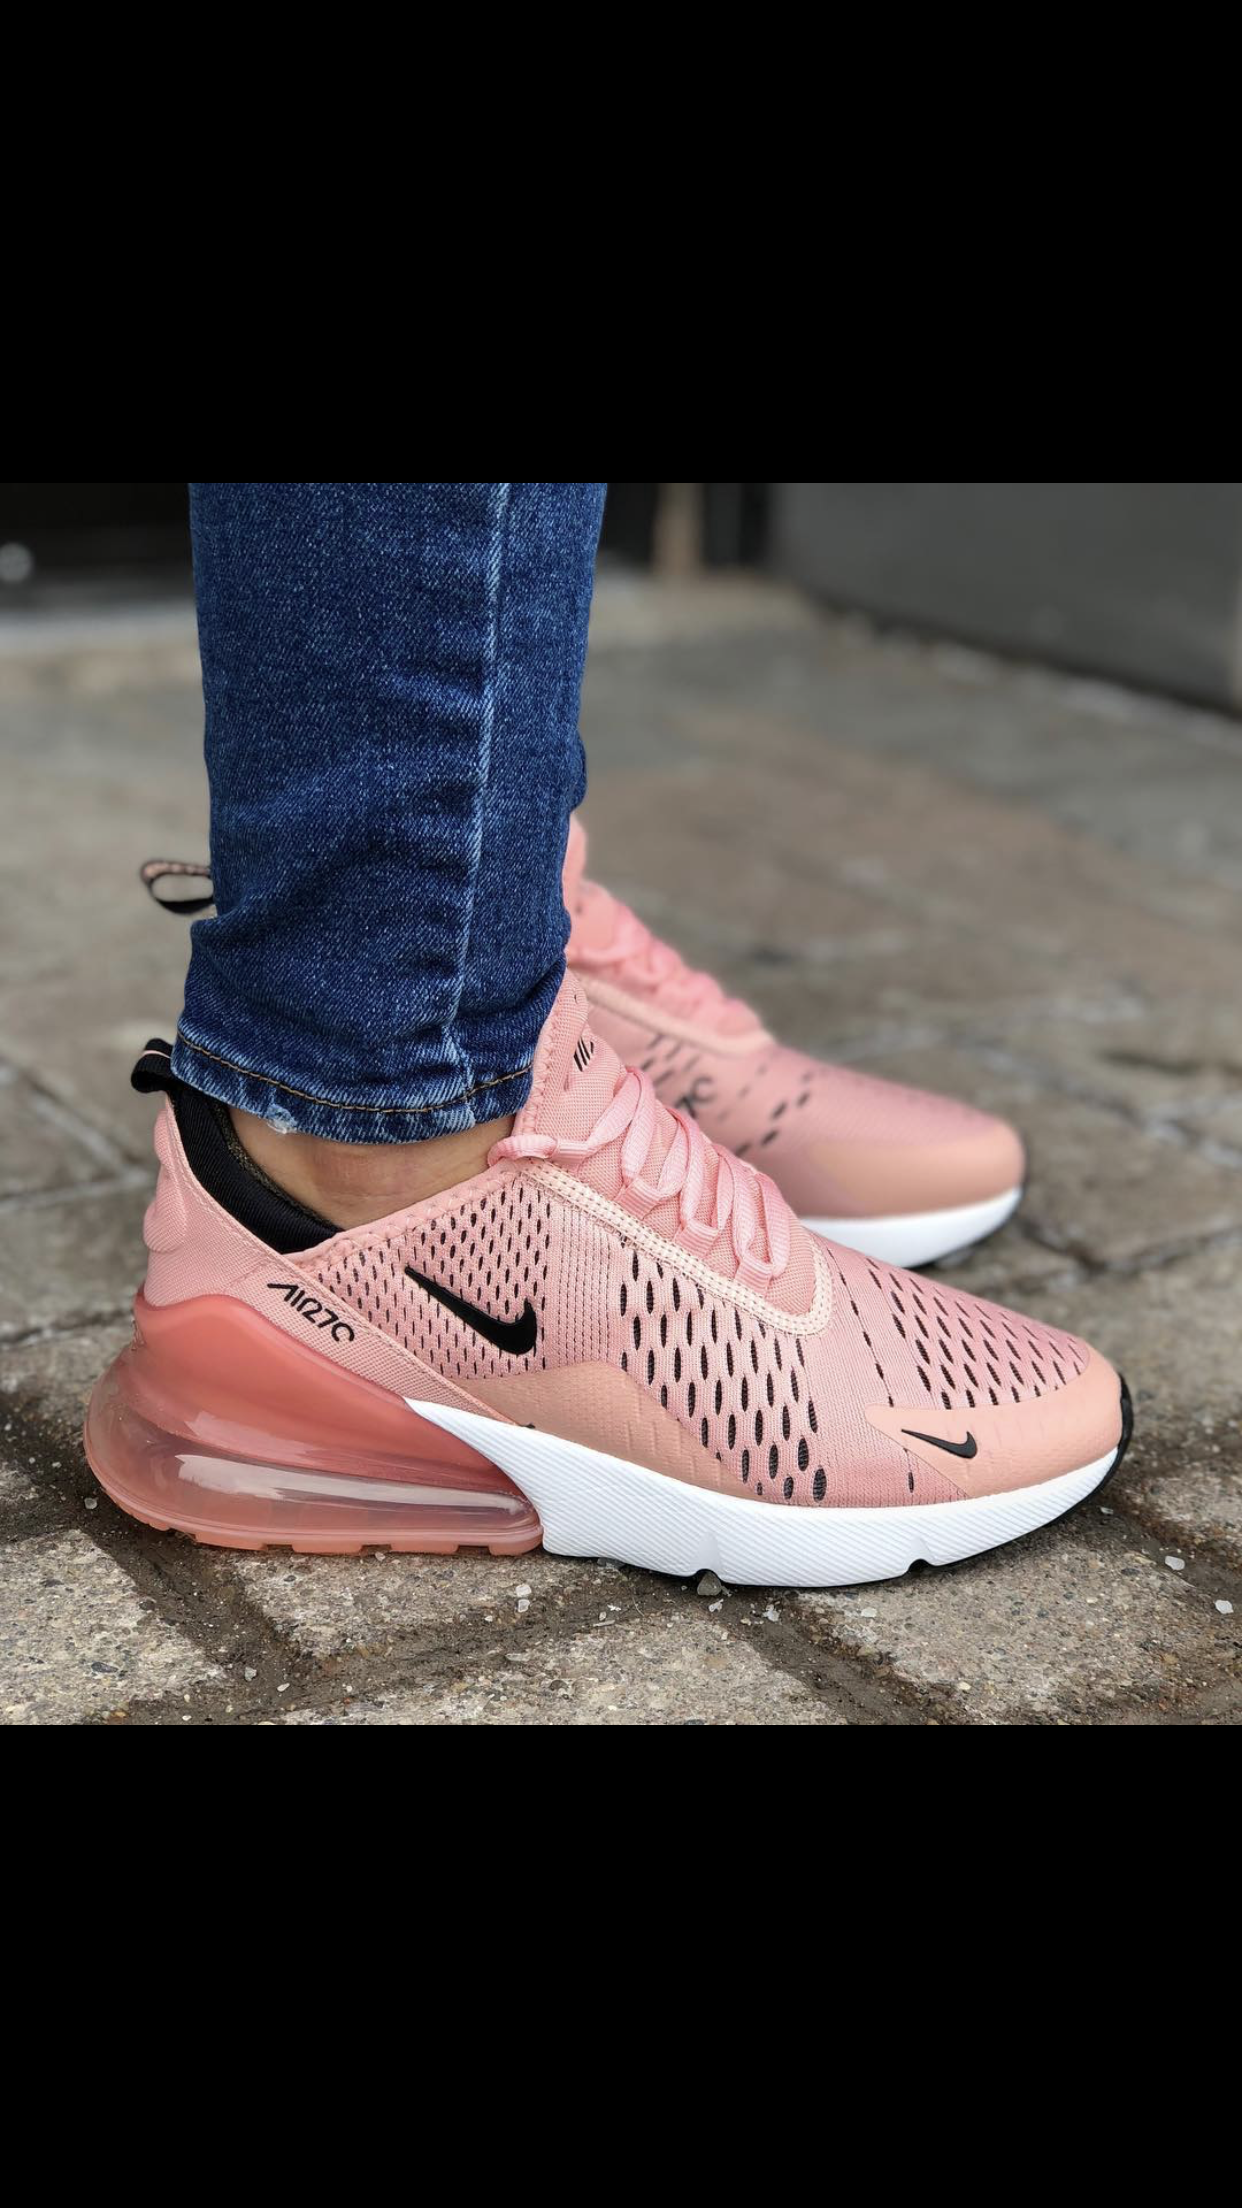 pasatiempo maníaco ven  NIKE Women's Womens Air Max 270, Coral Stardust/Black-Summit White #Nike # AirMax #NikeAirMax #Training #Fitness #Fittness…   Outfit shoes, Dream shoes,  Cute shoes